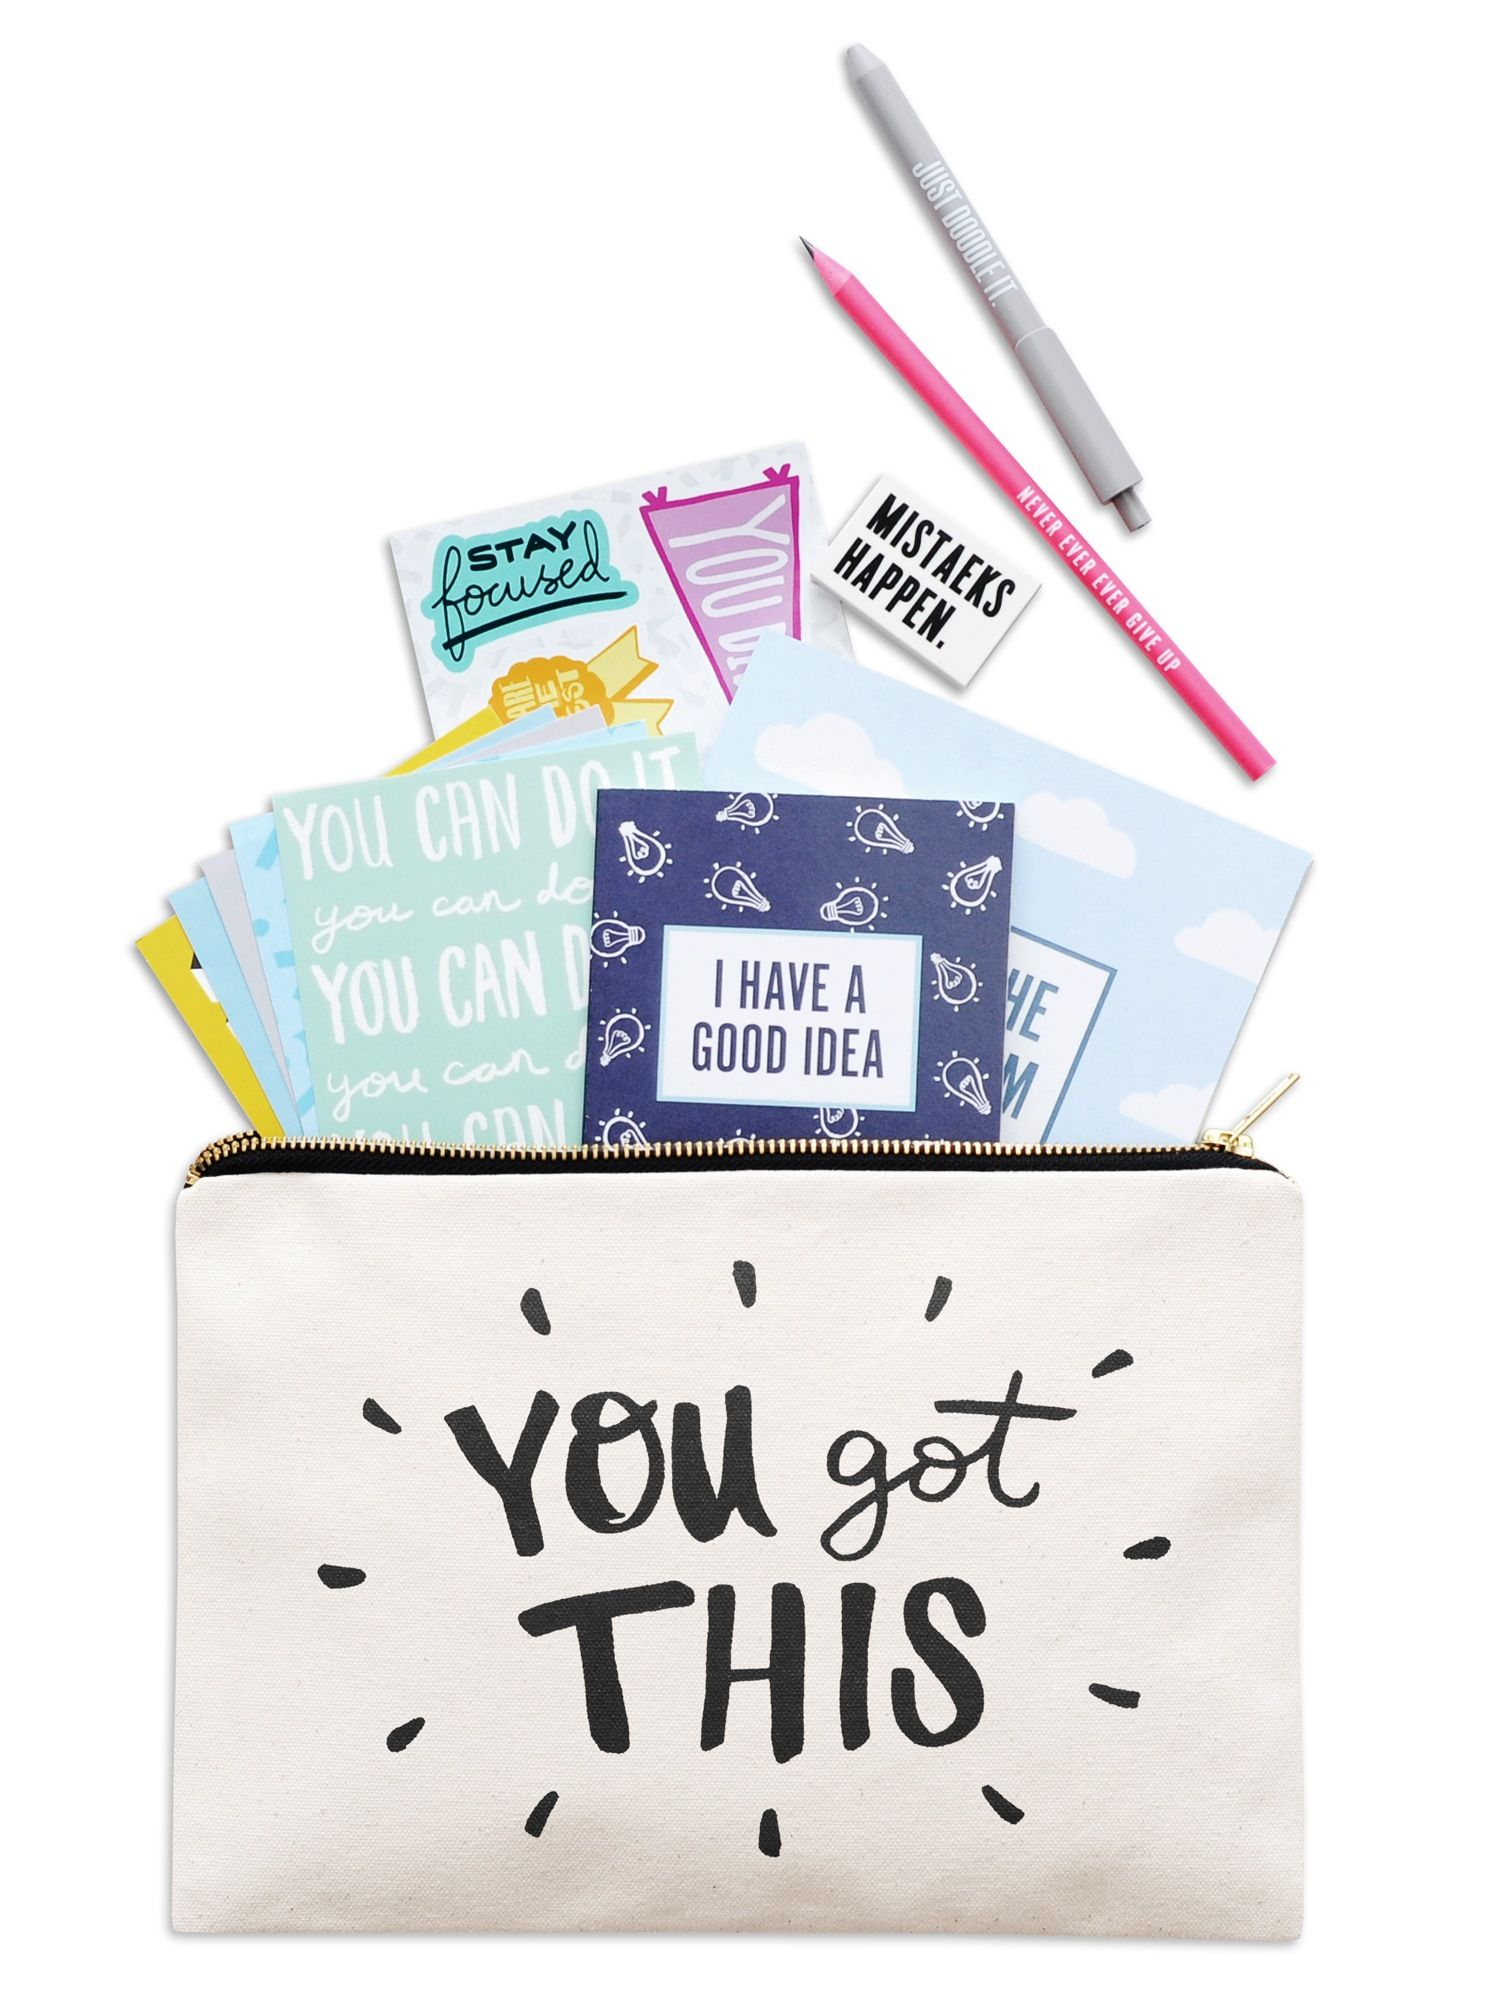 Oh Goody! This goody pouch gift set includes the following